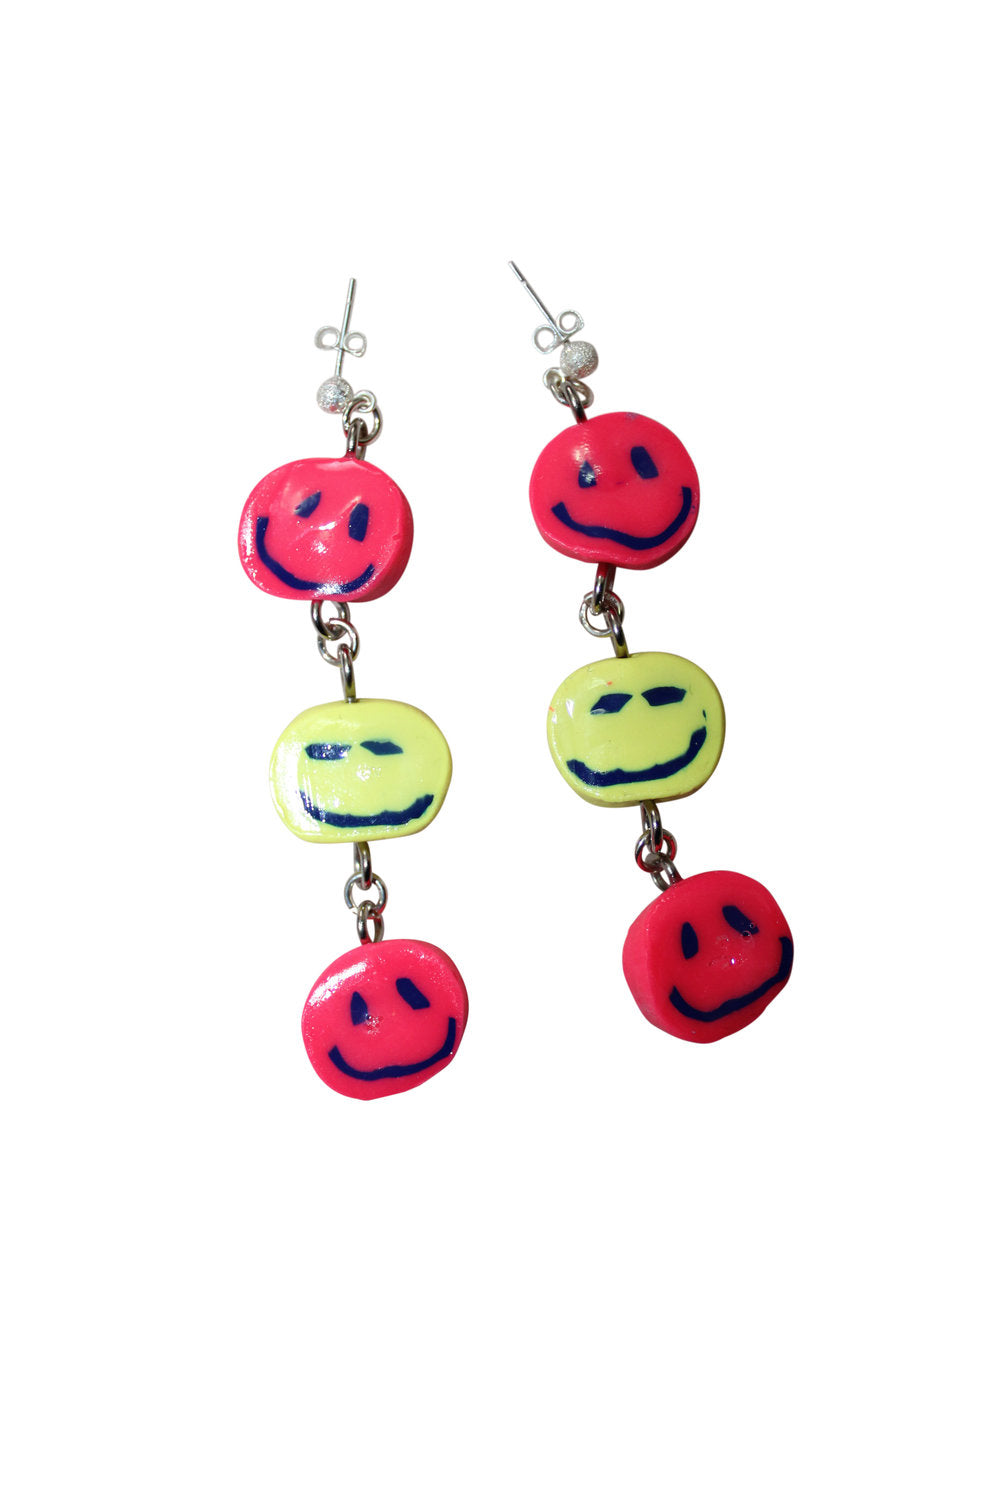 Put on a Happy Face Earrings